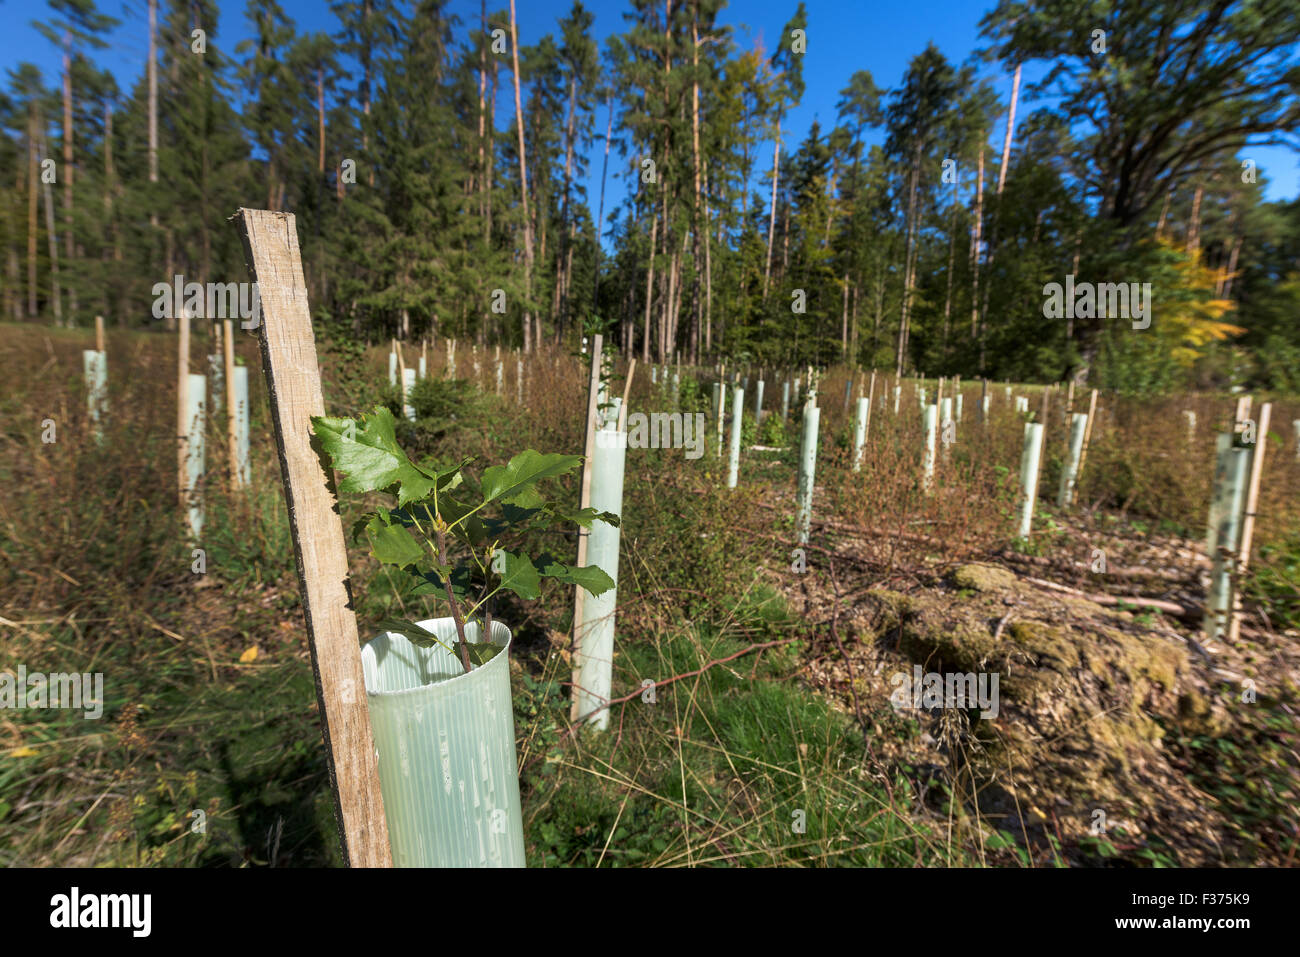 reforestation small saplings tube sapling tree forest protection from wild game bite, renew seedlings protection - Stock Image